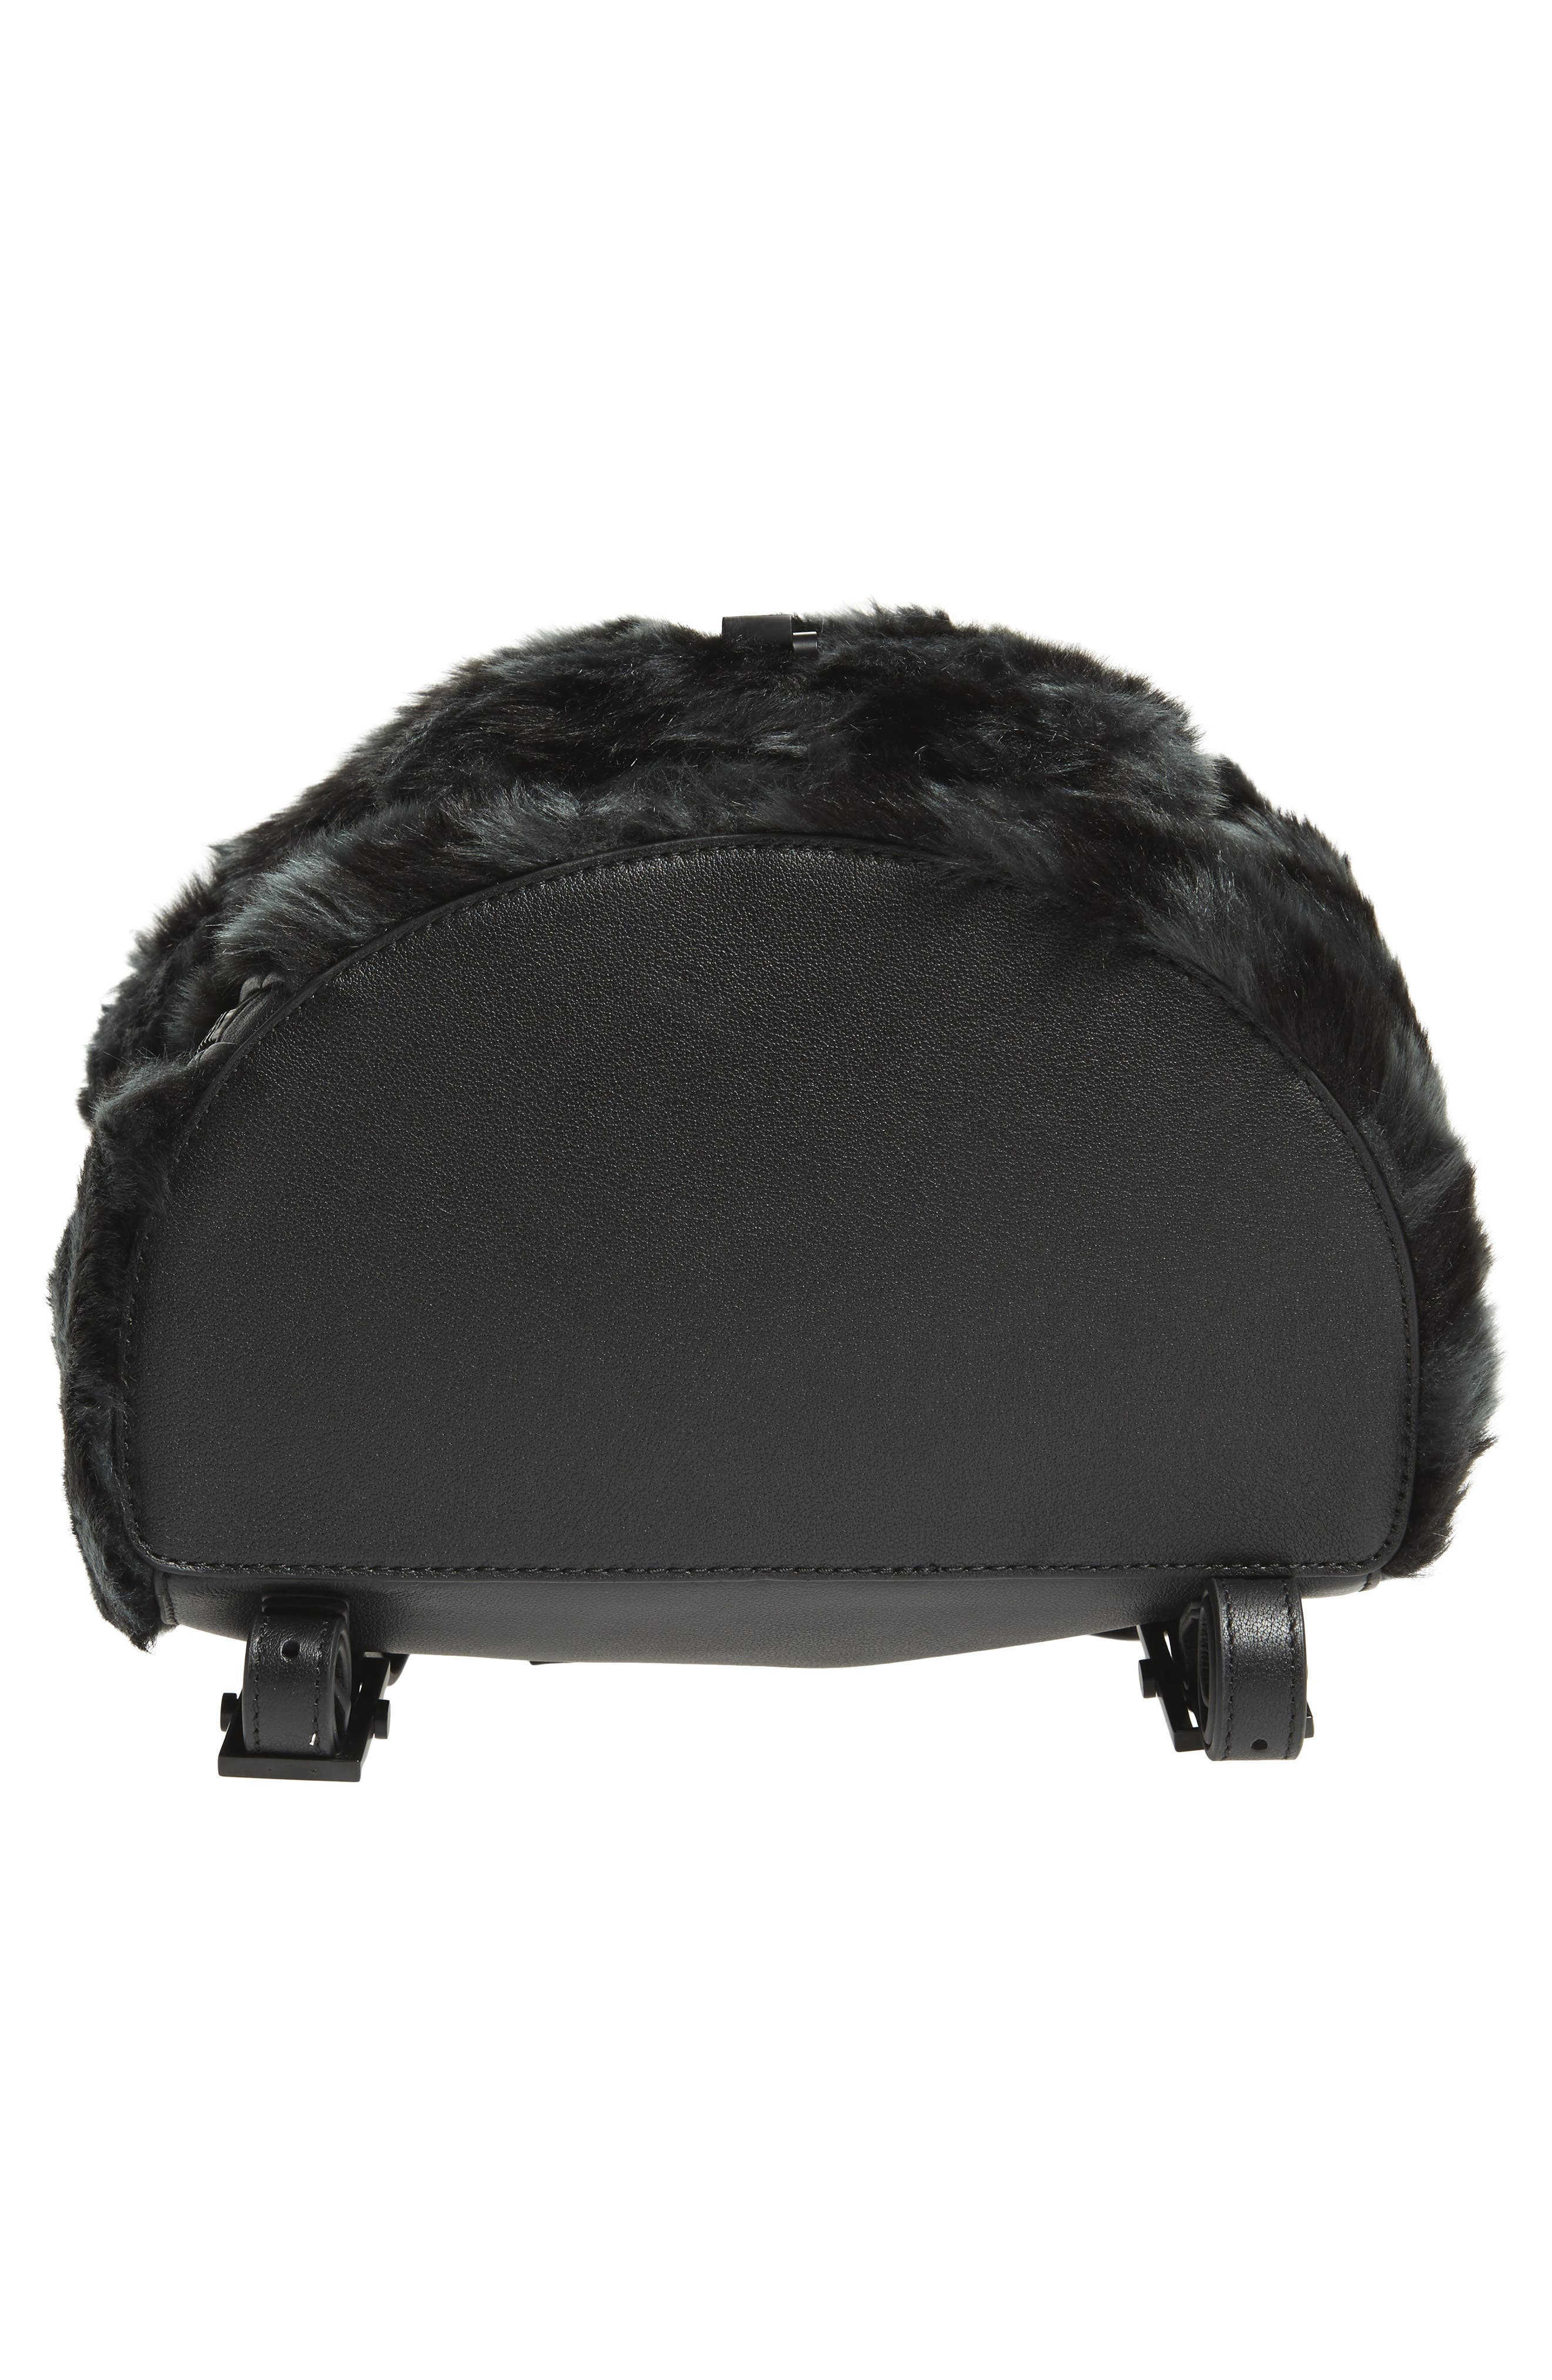 Koenji Faux Fur Backpack,                             Alternate thumbnail 6, color,                             004